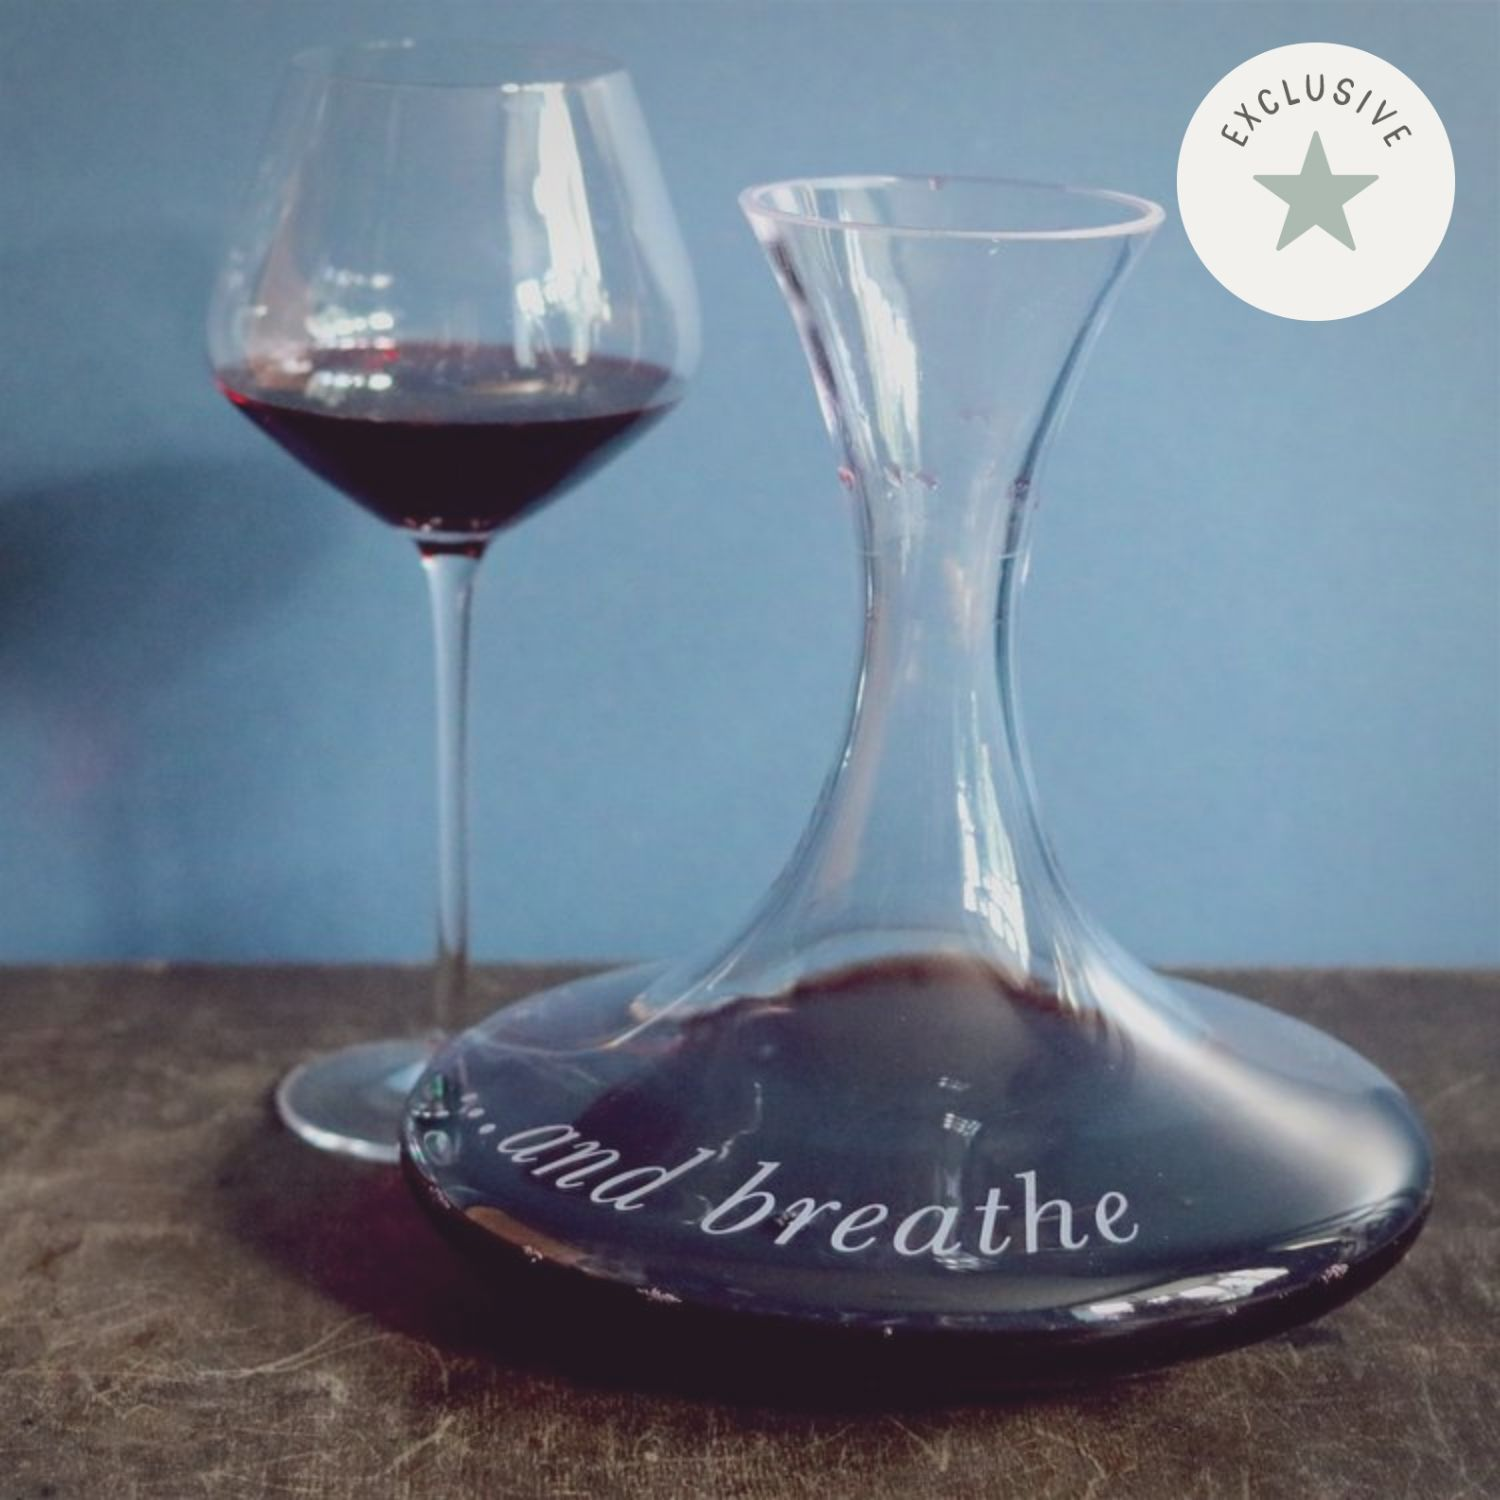 HR20b Decanter 'and breathe' £60.00.jpg